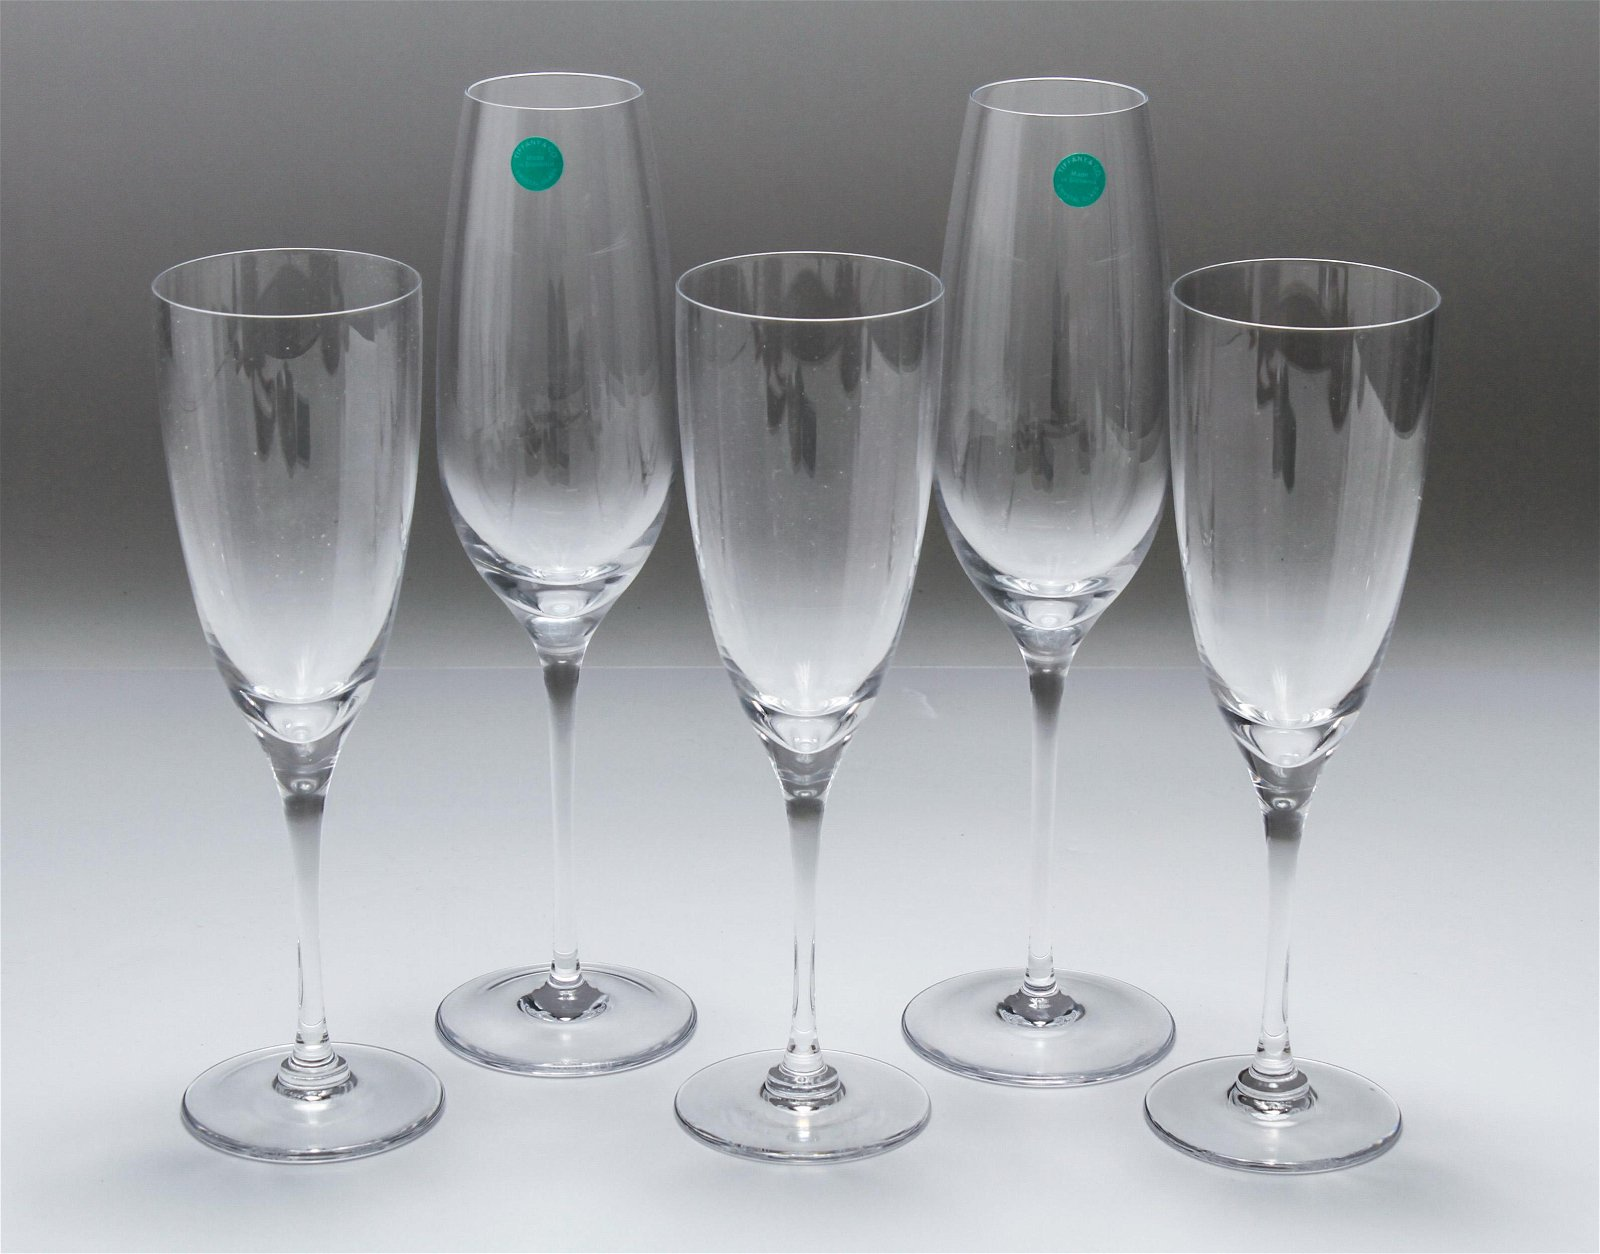 Tiffany & Co. & French Crystal Champage Flutes, 5